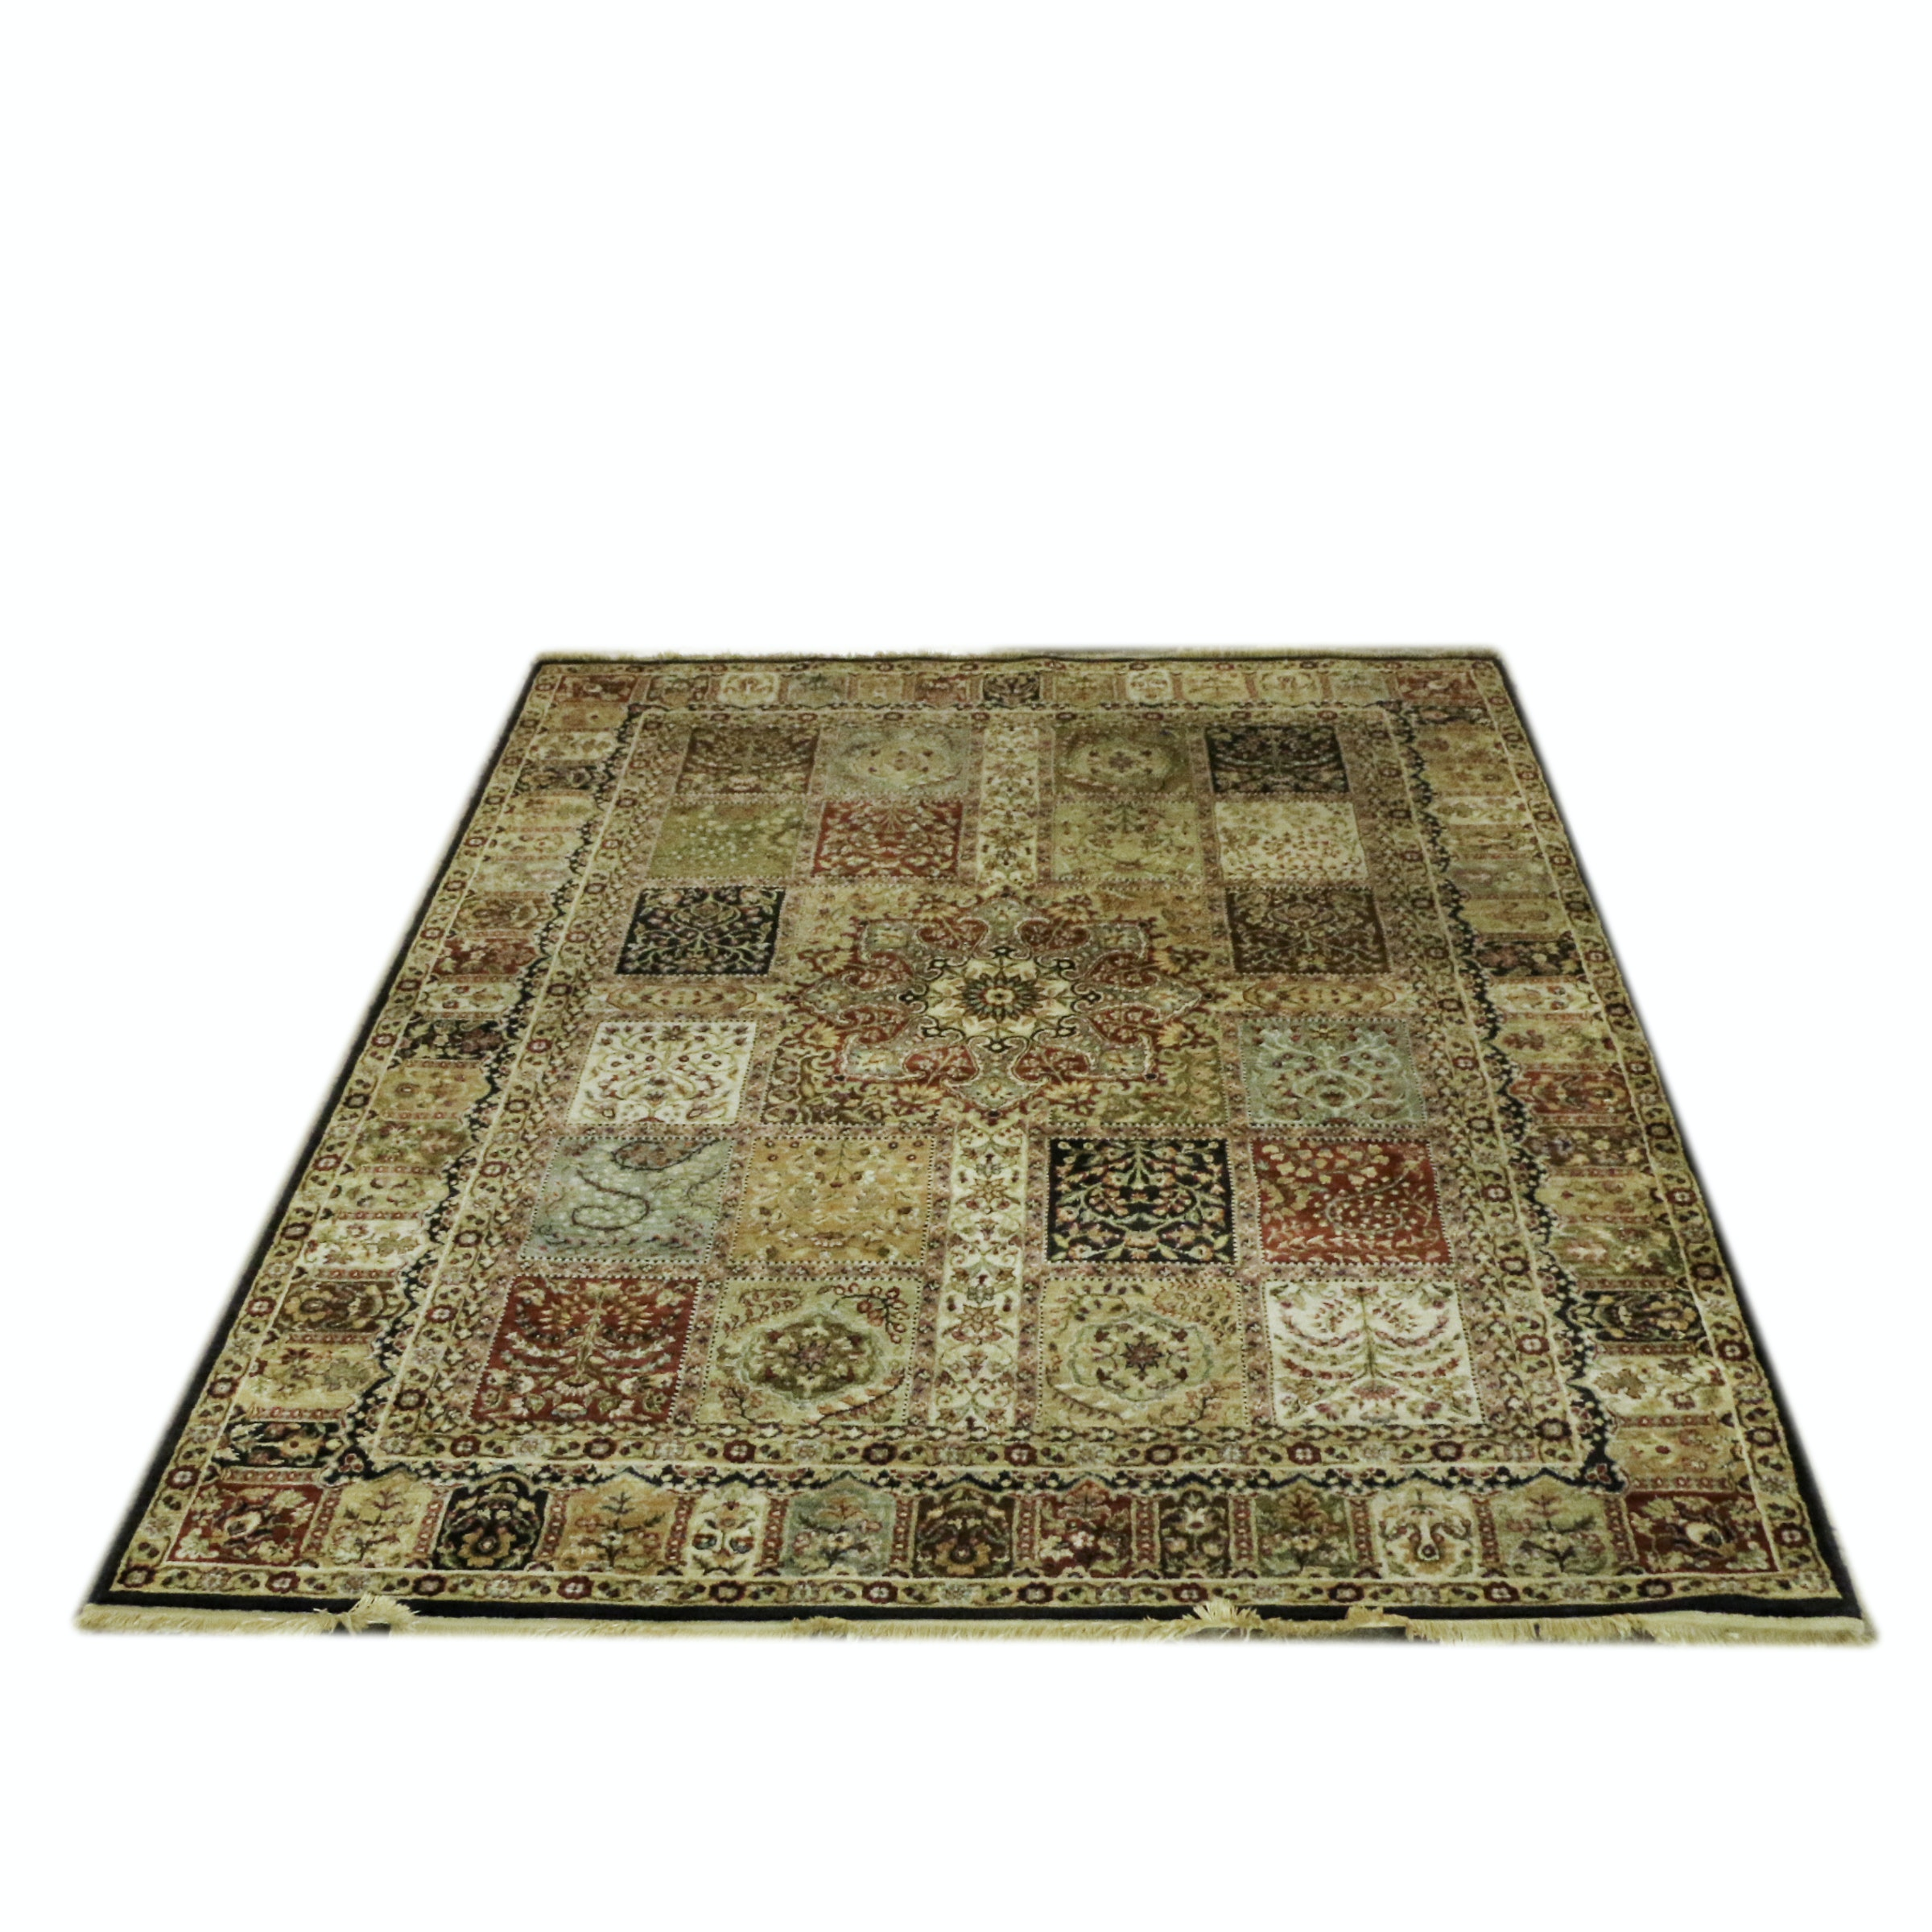 Power Loomed Kathy Ireland For Shaw Persian Style Rug Ebth